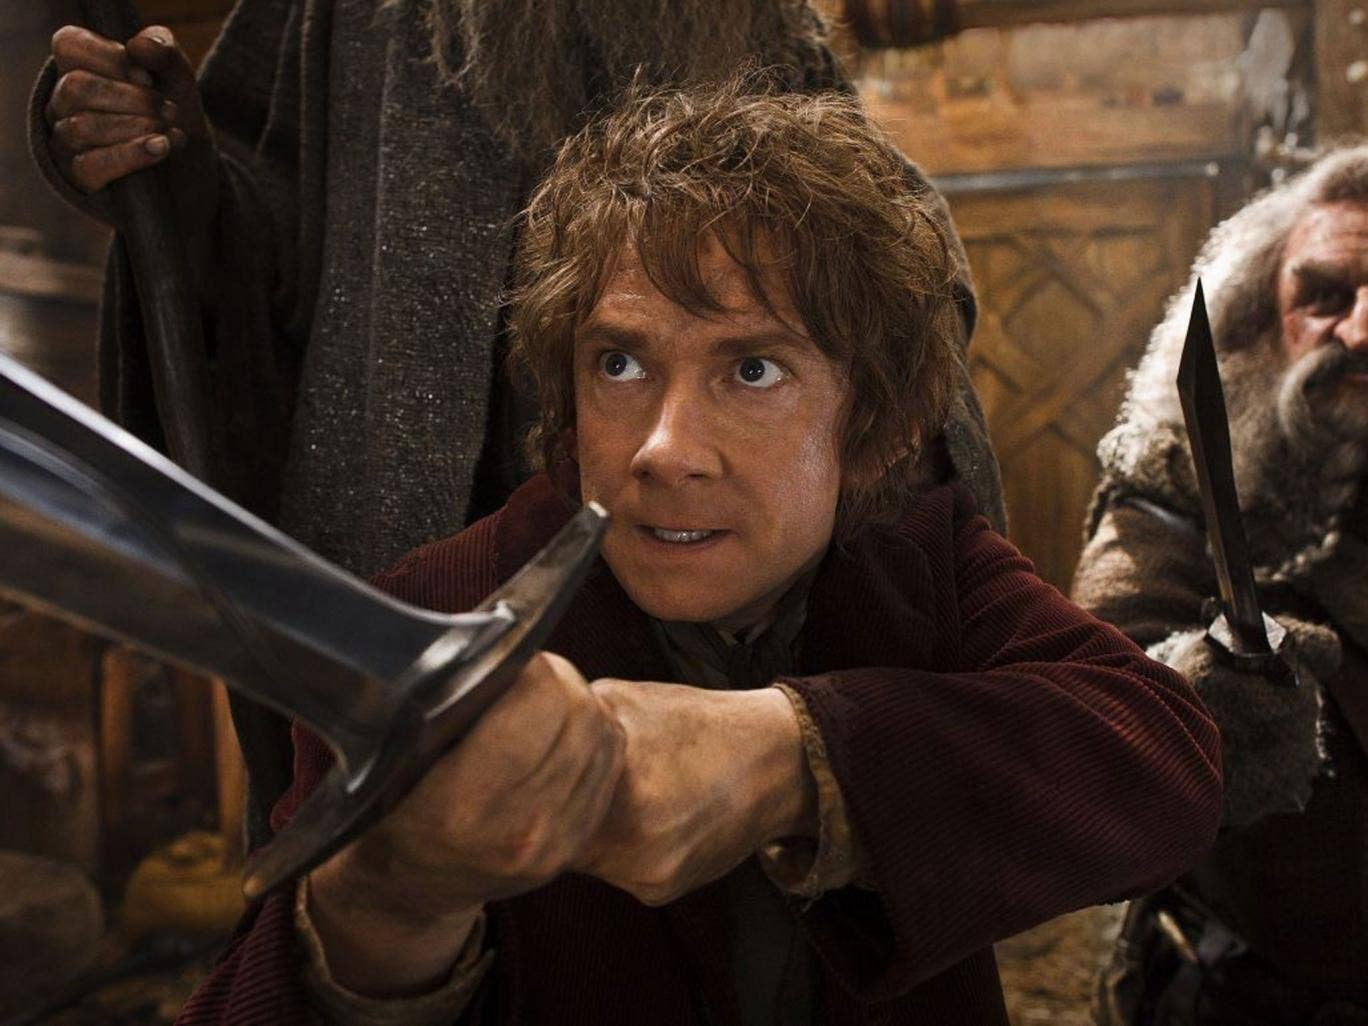 Knives out: Martin Freeman in a scene from The Hobbit: The Desolation of Smaug